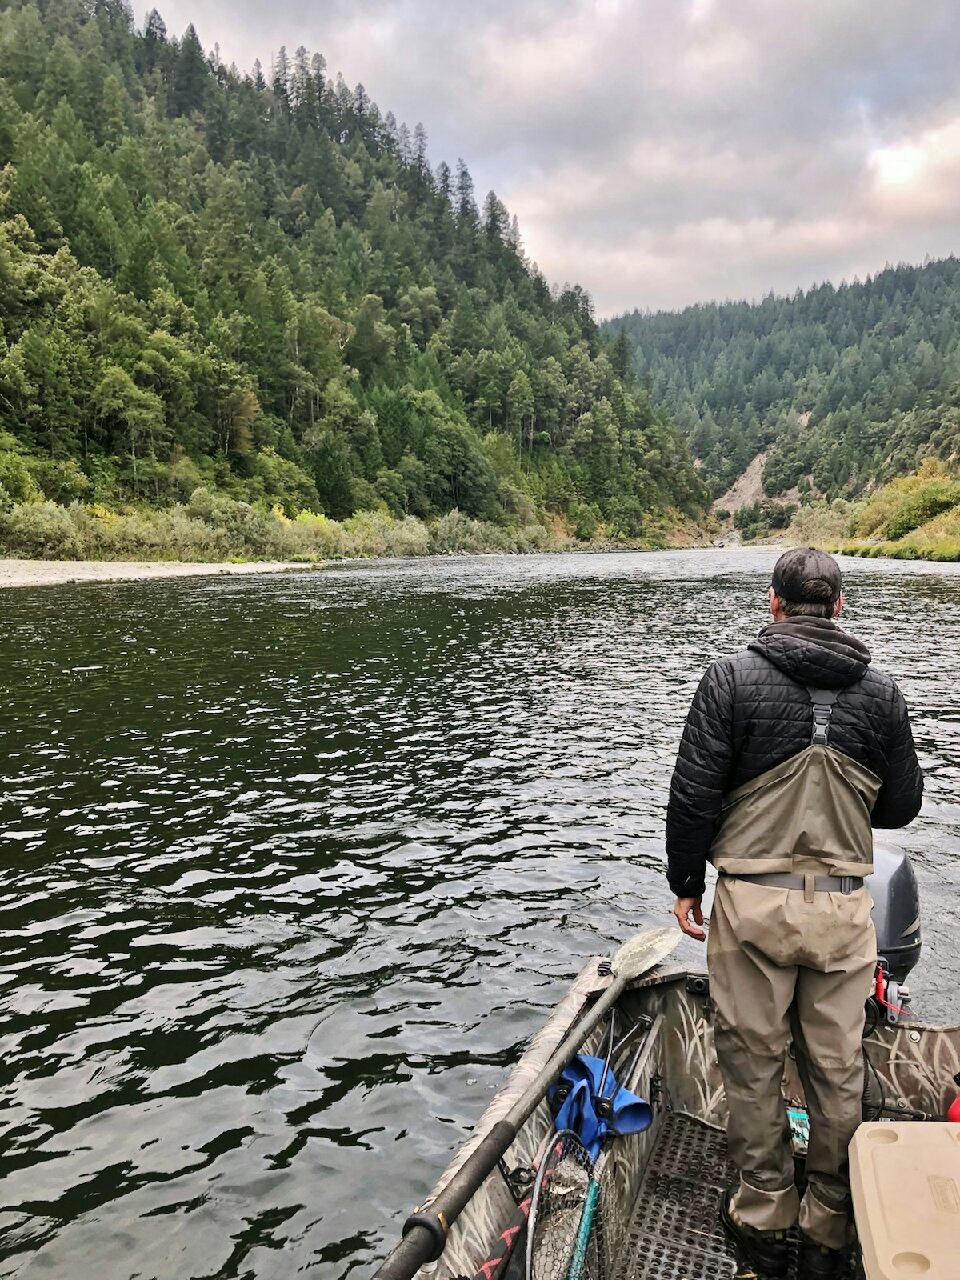 Scouting The Klamath Photo by Chuck Volckhausen